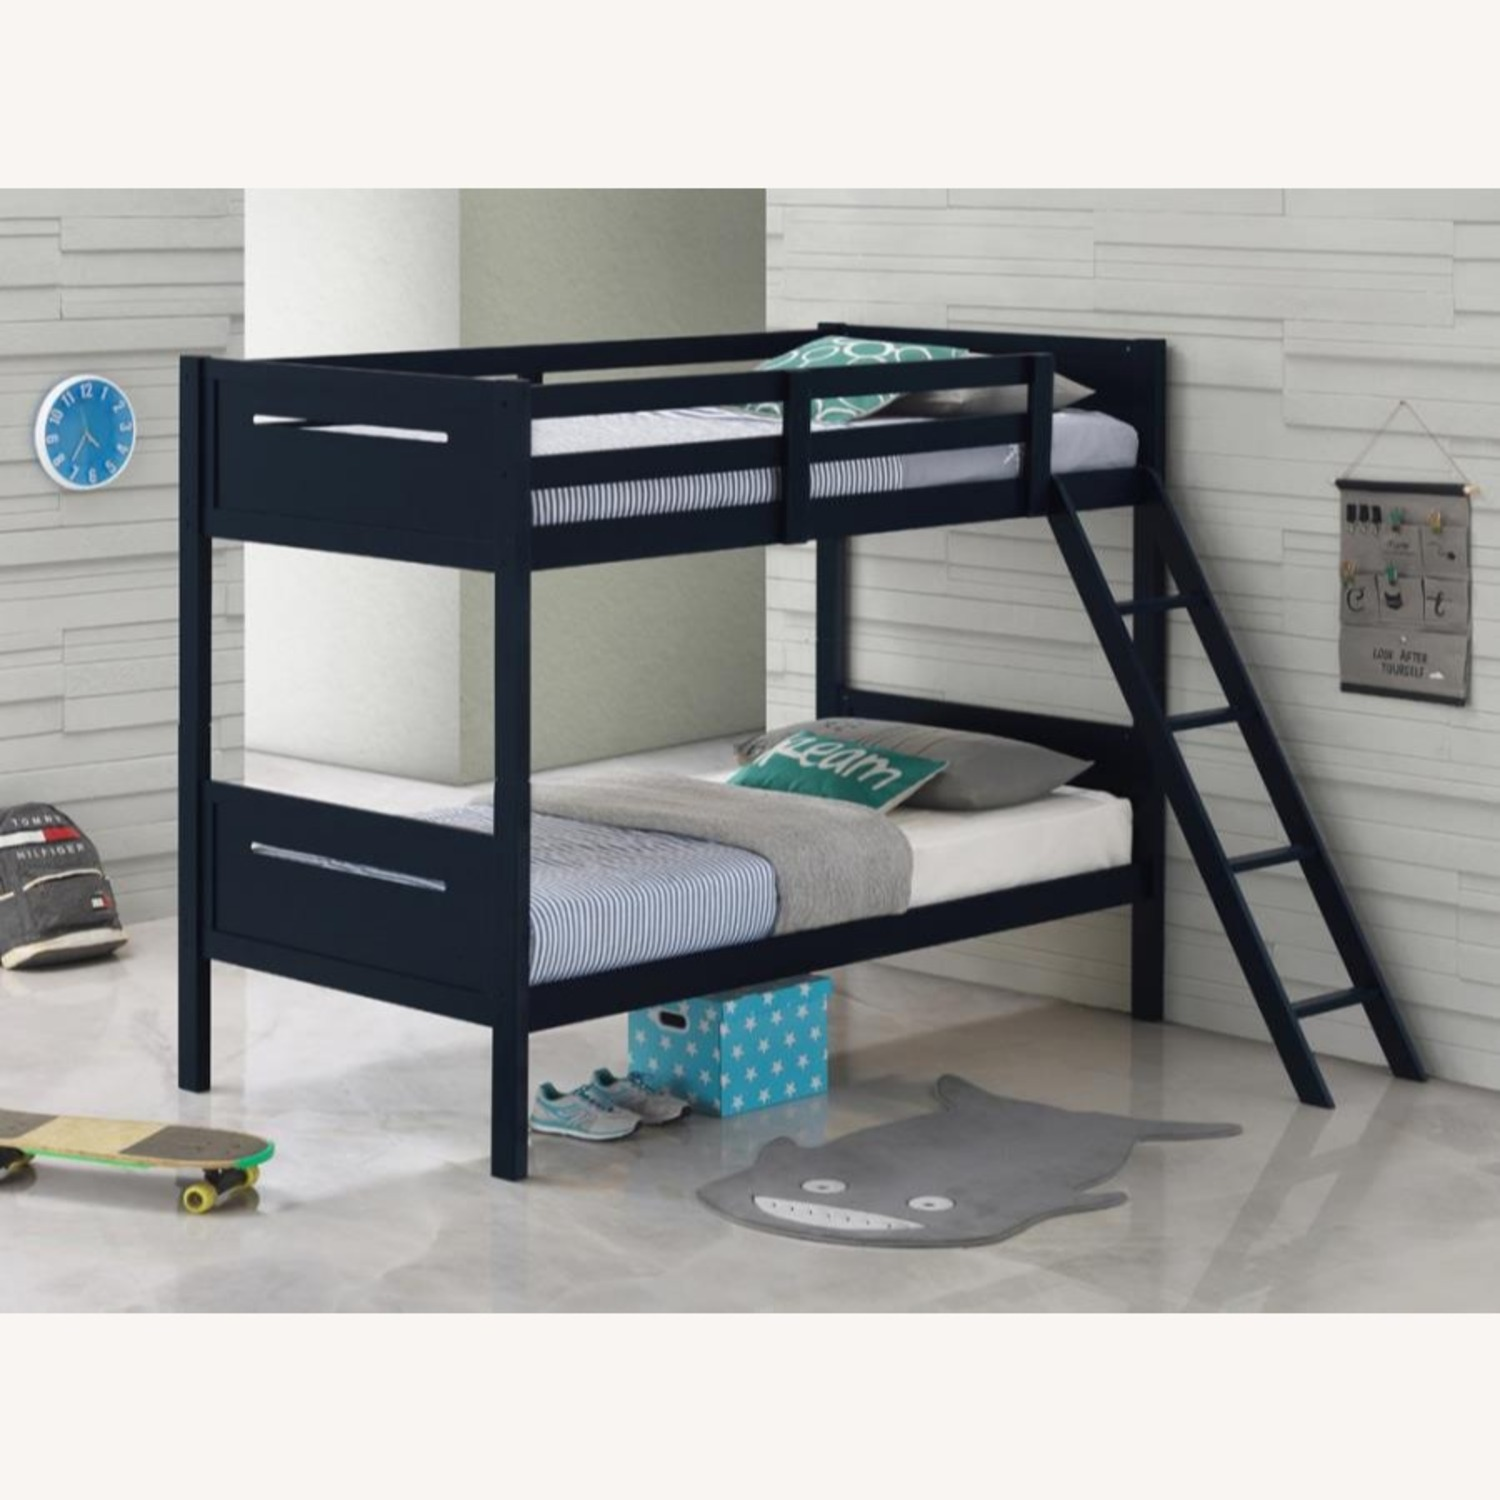 Bunk Bed In Blue Solid Rubberwood Finish - image-4